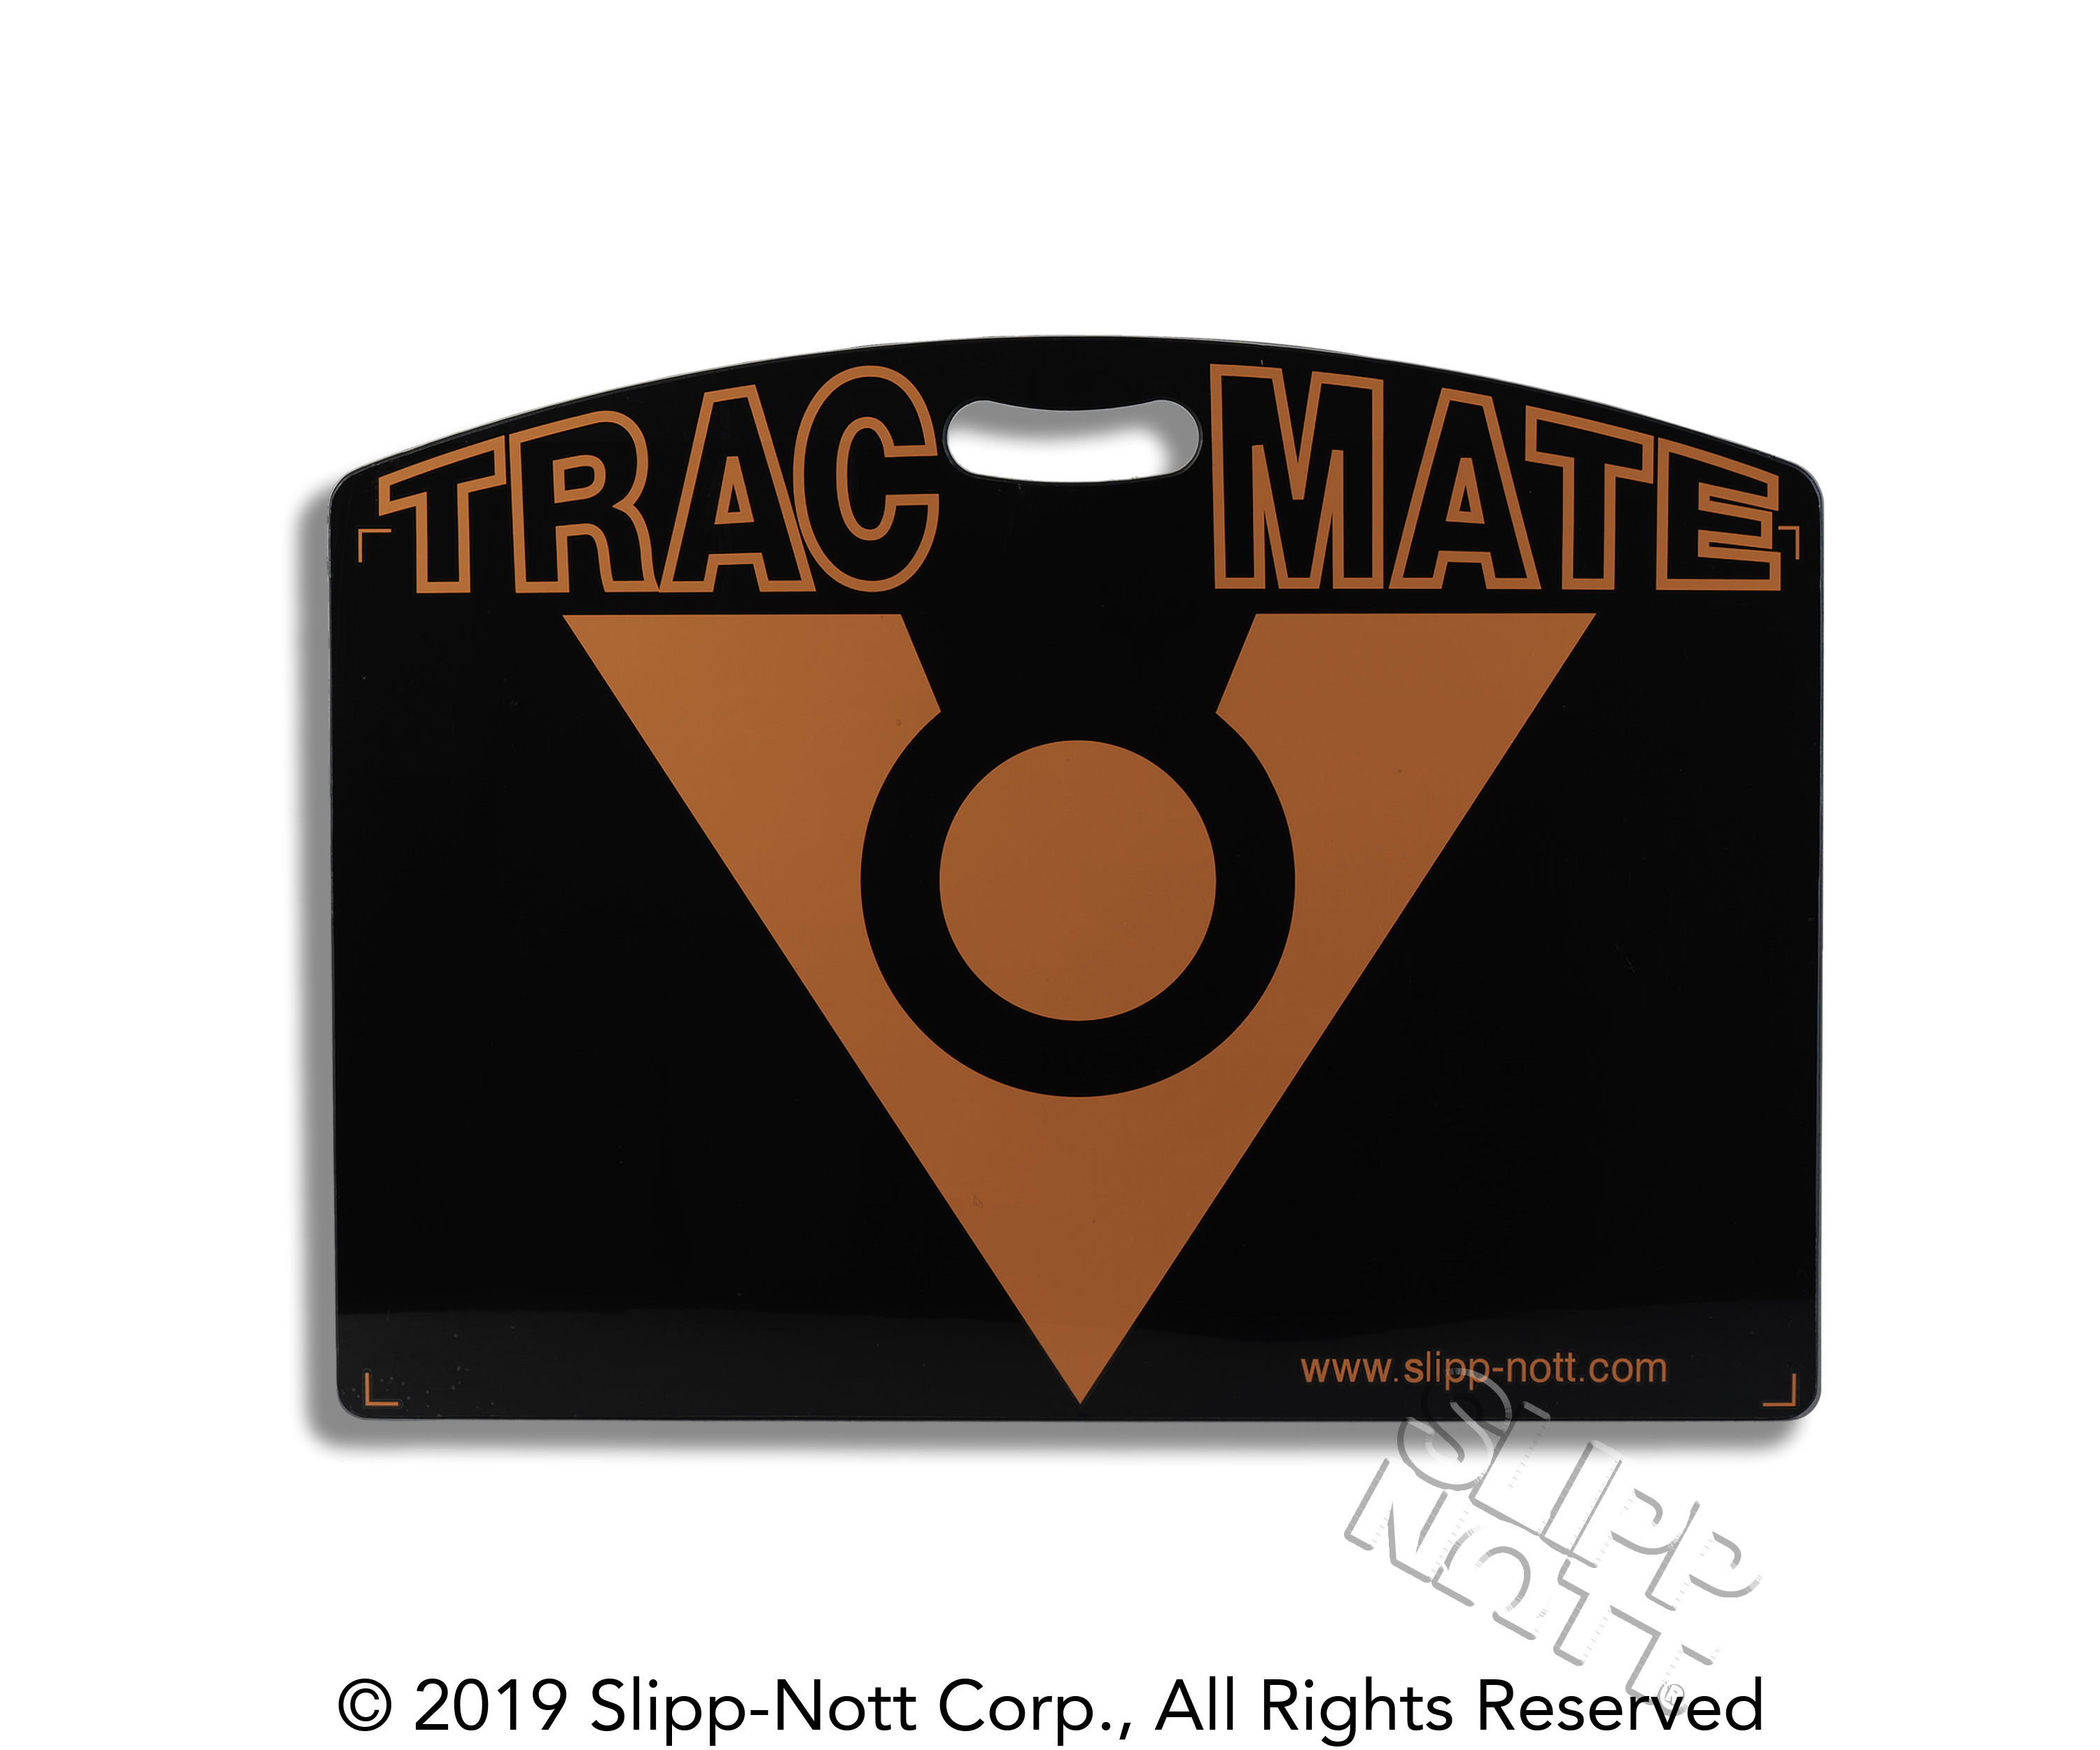 Photo of a Slipp-Nott Trac Mat Traction Base